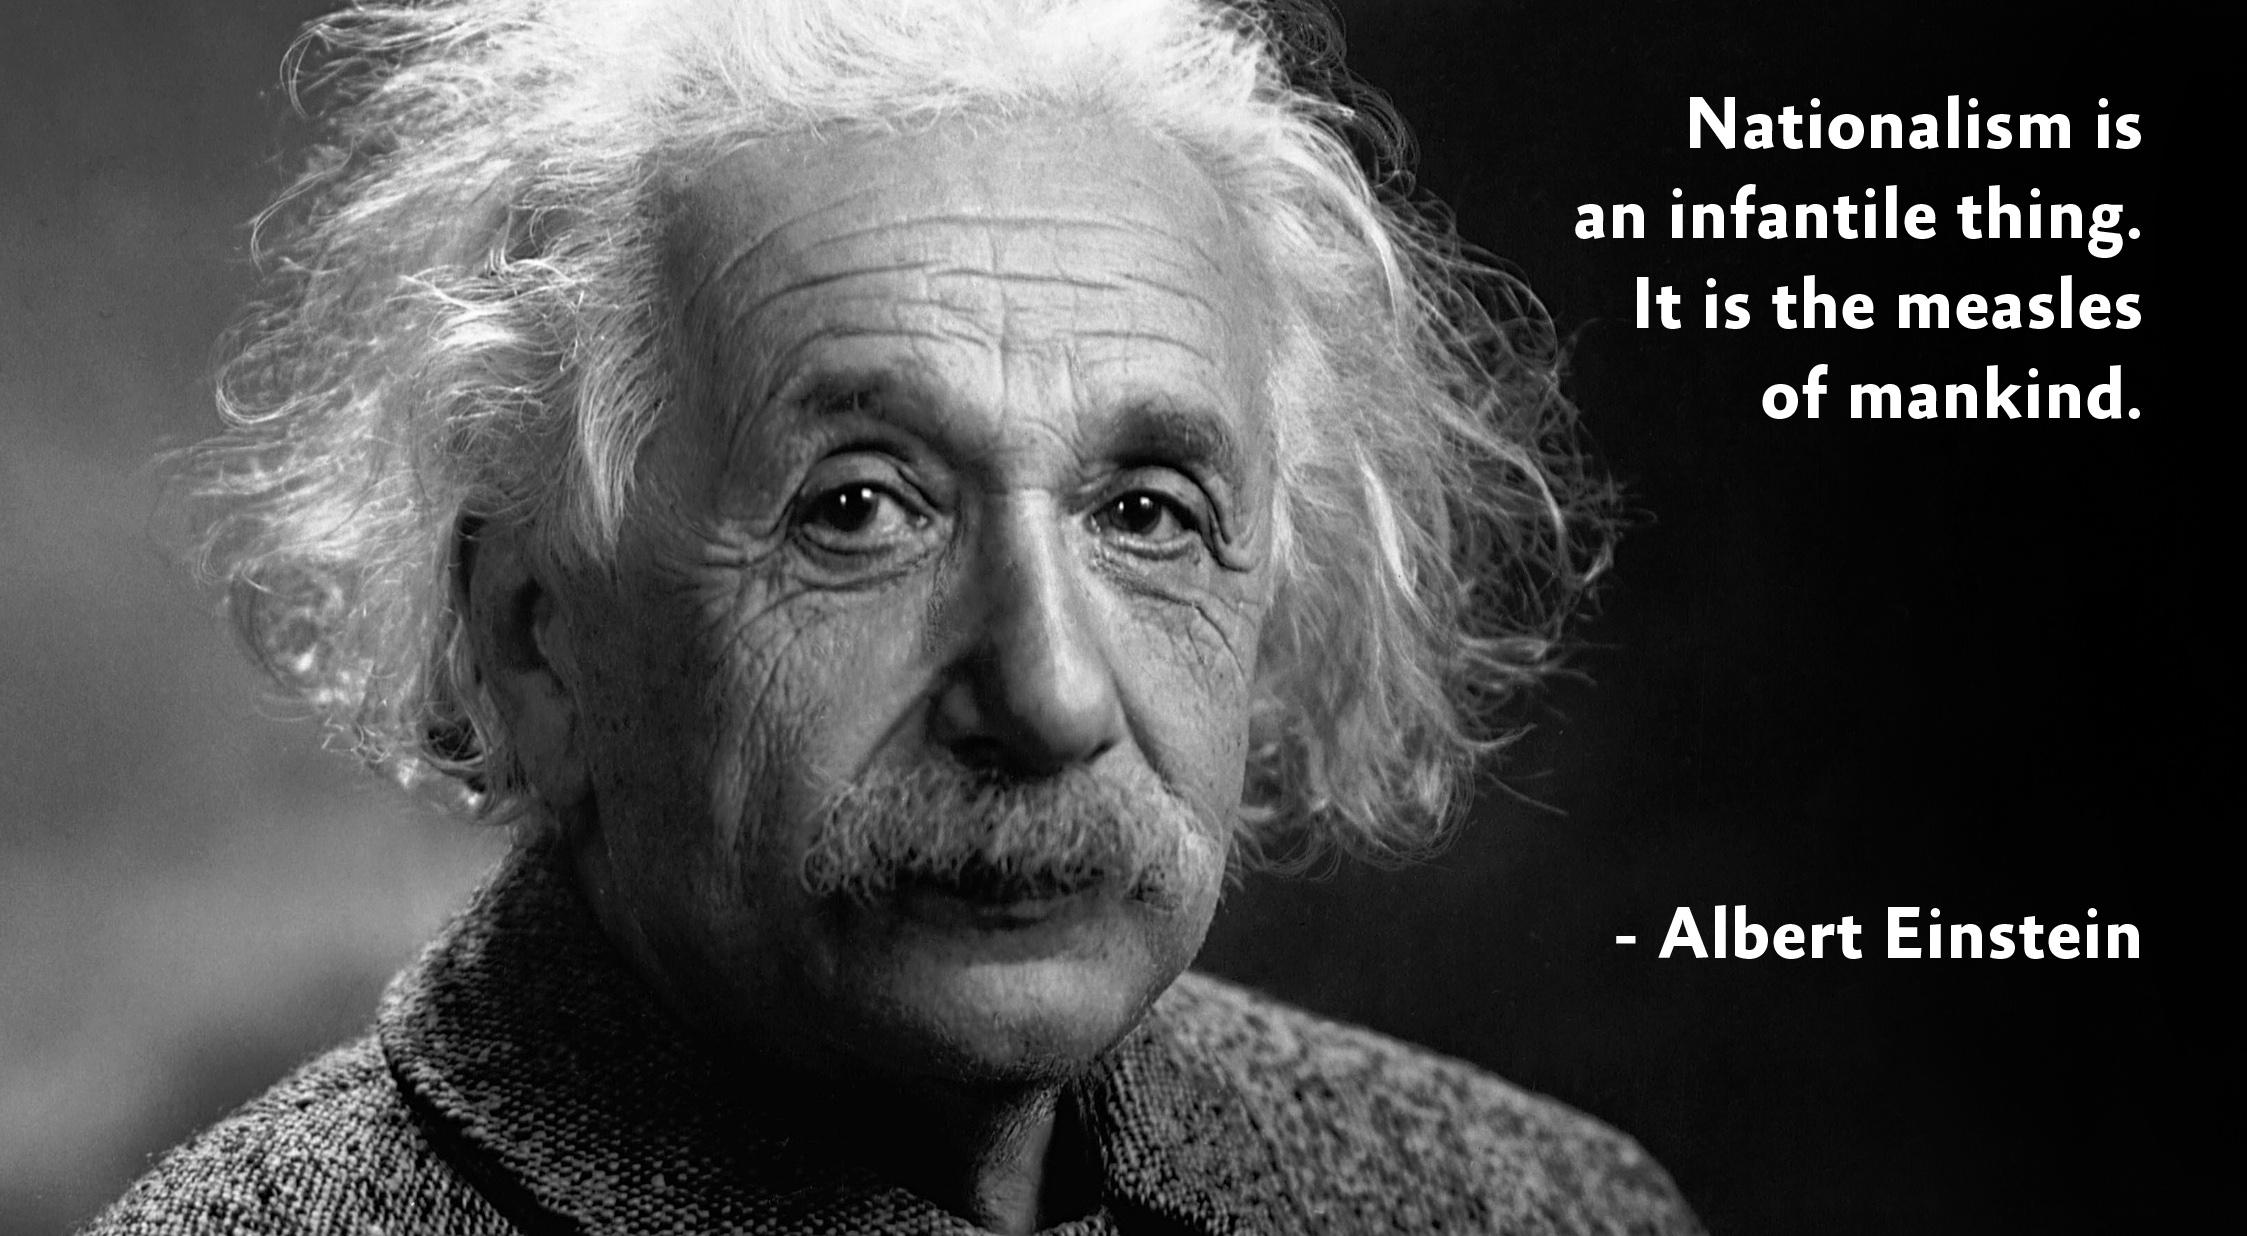 """Nationalism is an infantile thing. It is the measles of mankind."" – Albert Einstein [2247 × 1236]"